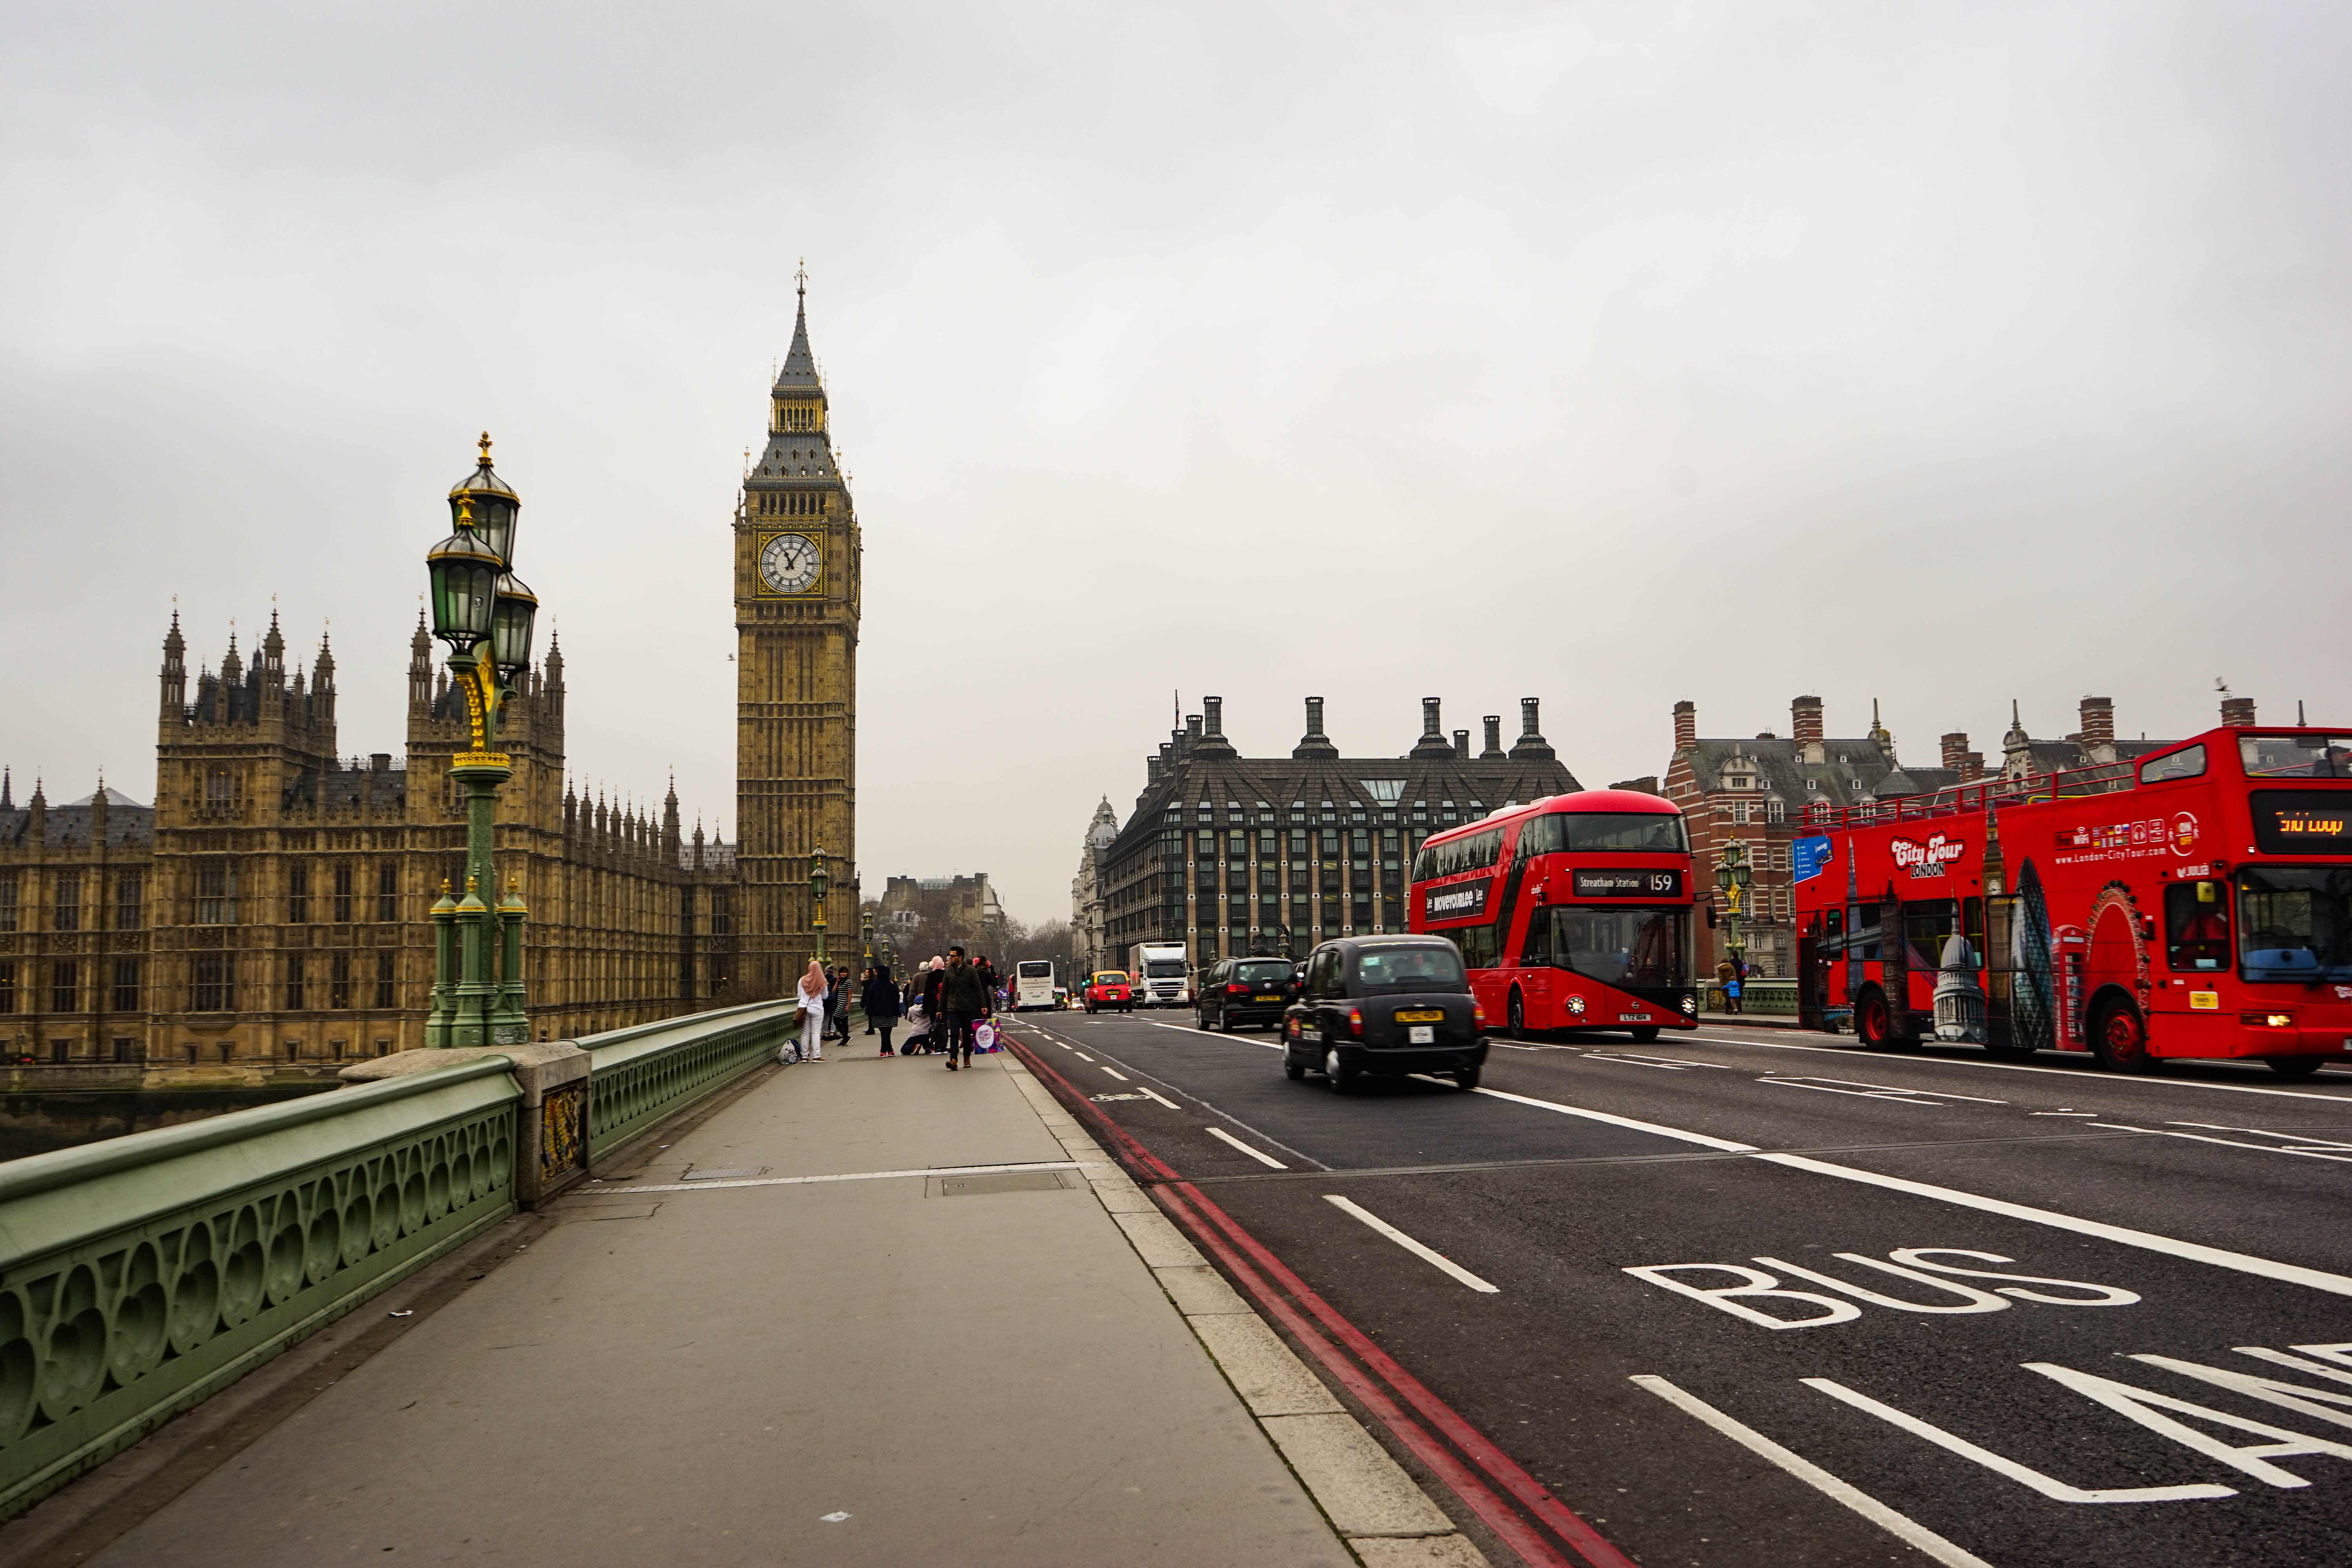 Budget London: How To Explore London Cheaply